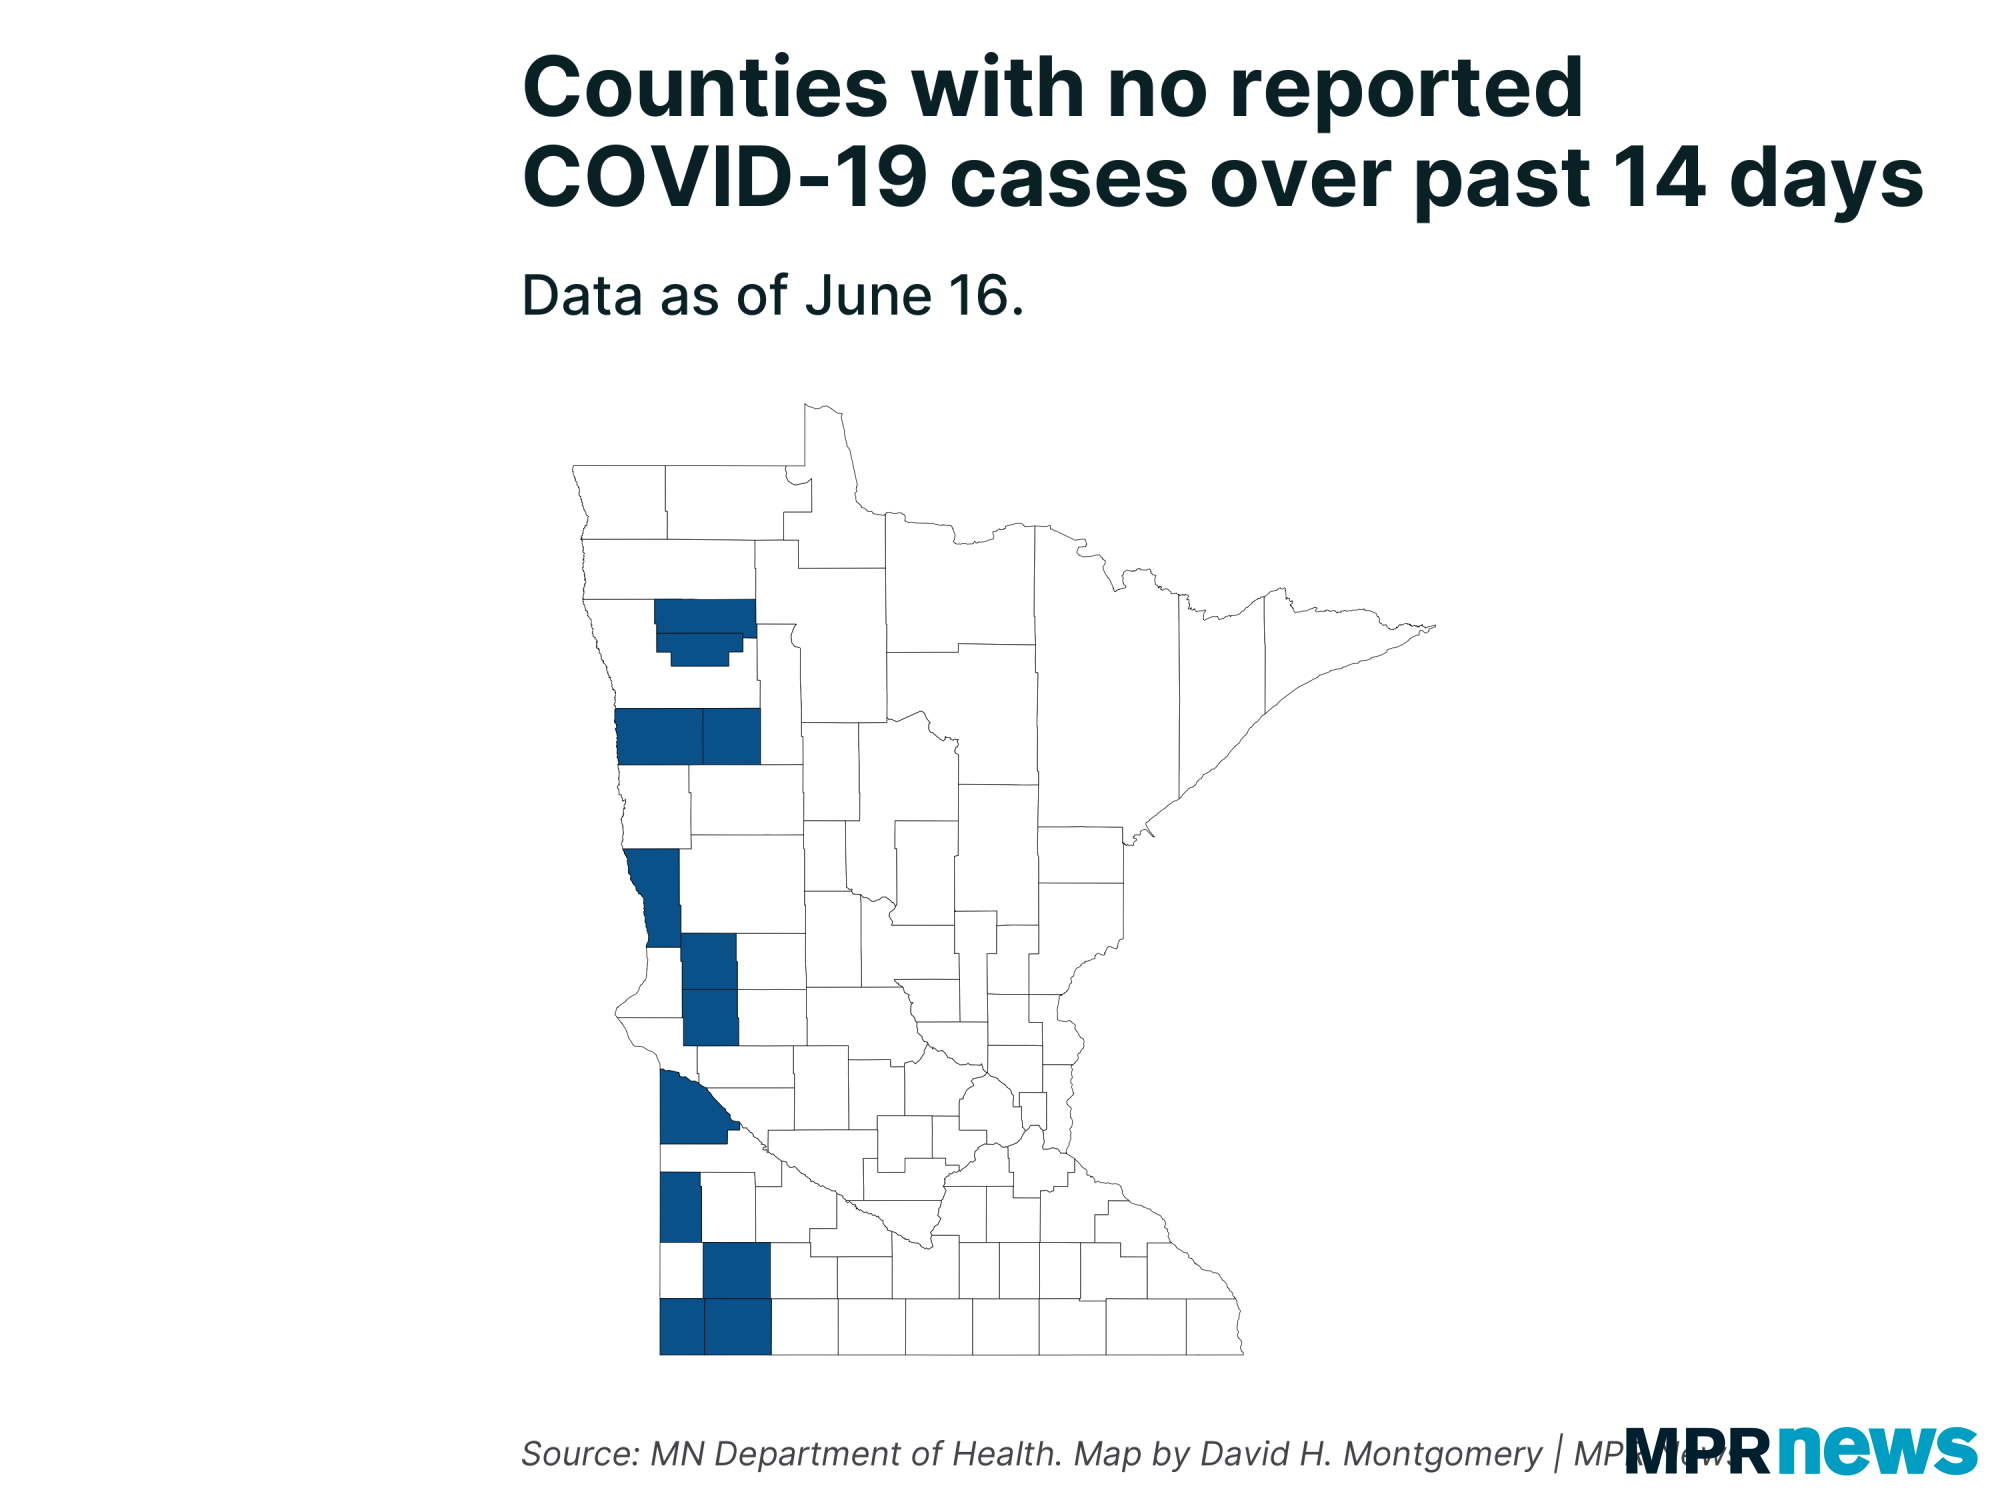 Counties with no reported COVID-19 cases over the past 14 days